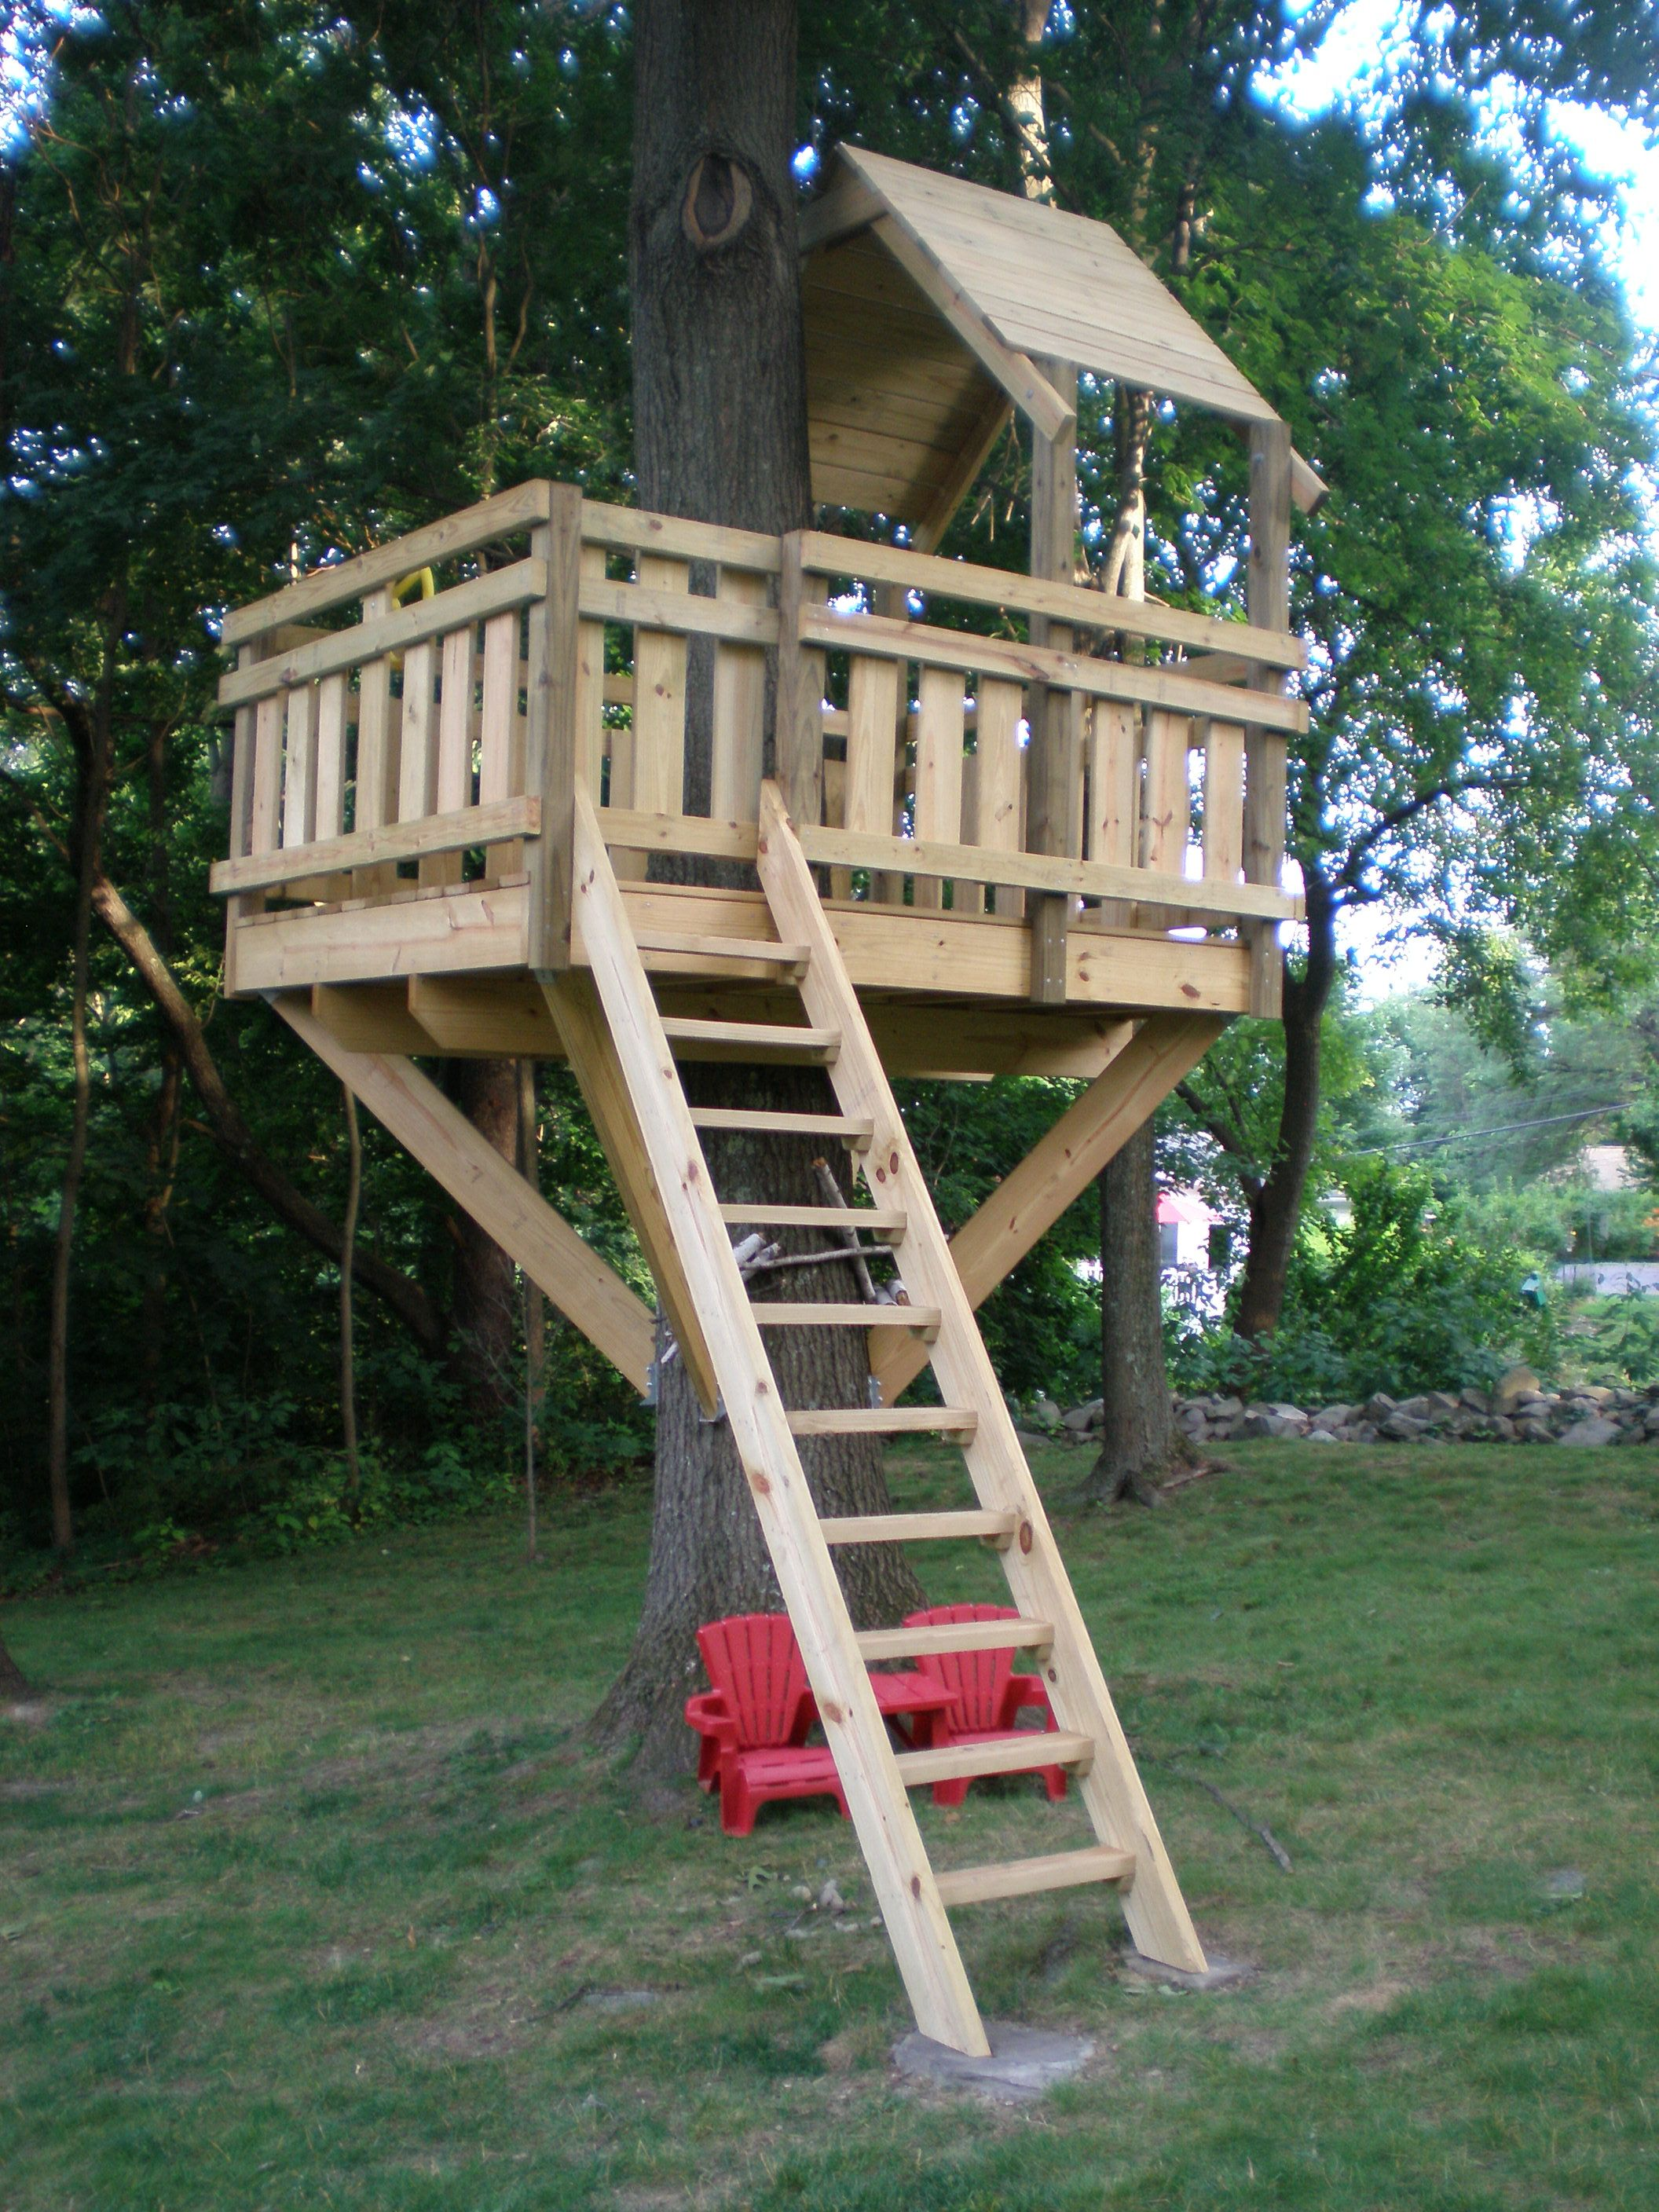 Tree fort ladder gate roof finale kids tree forts for Small tree house